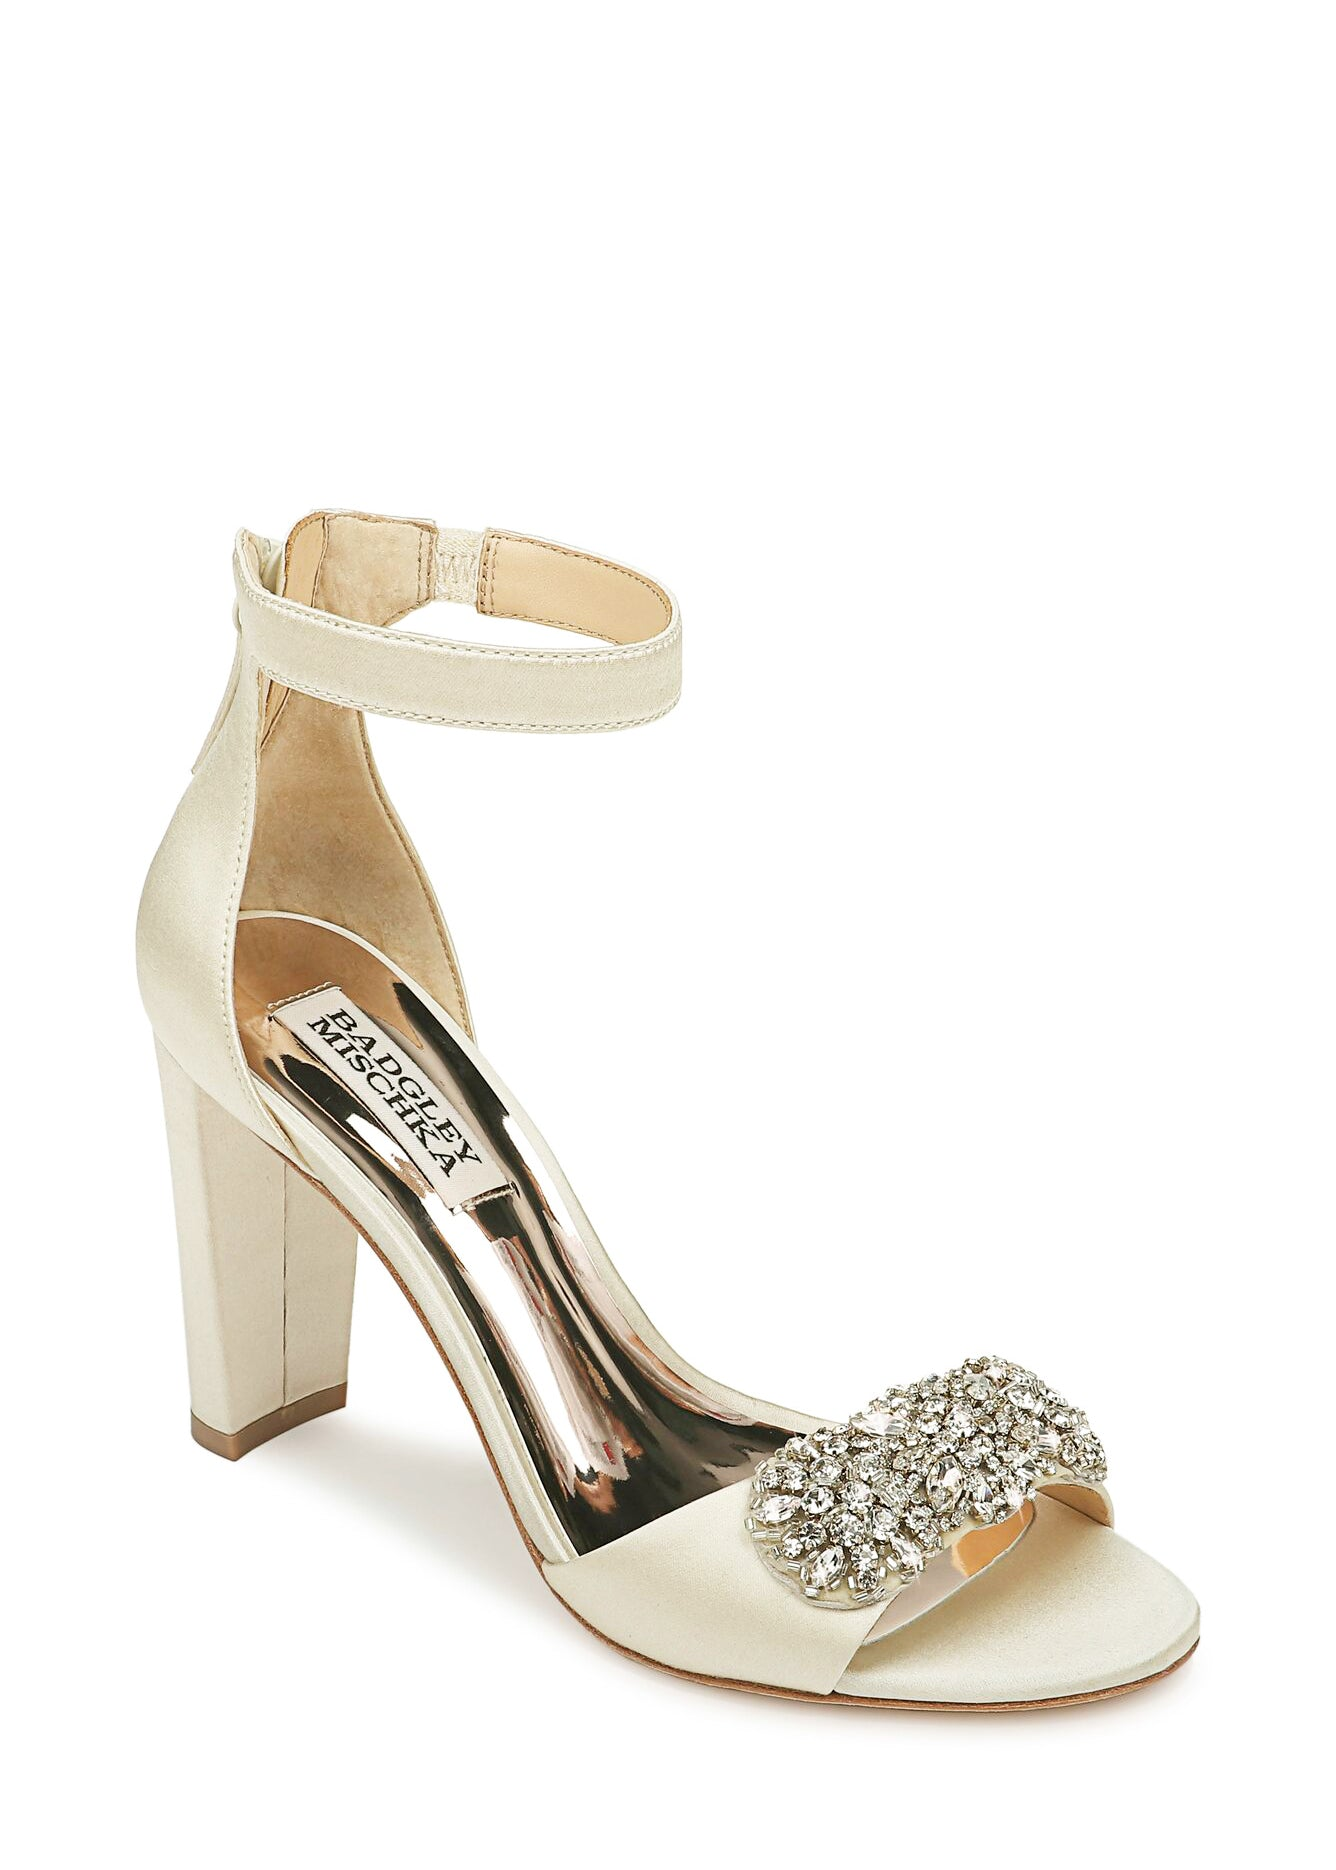 Edaline - Coming Soon, Shoes, Badgley Mischka - Eternal Bridal